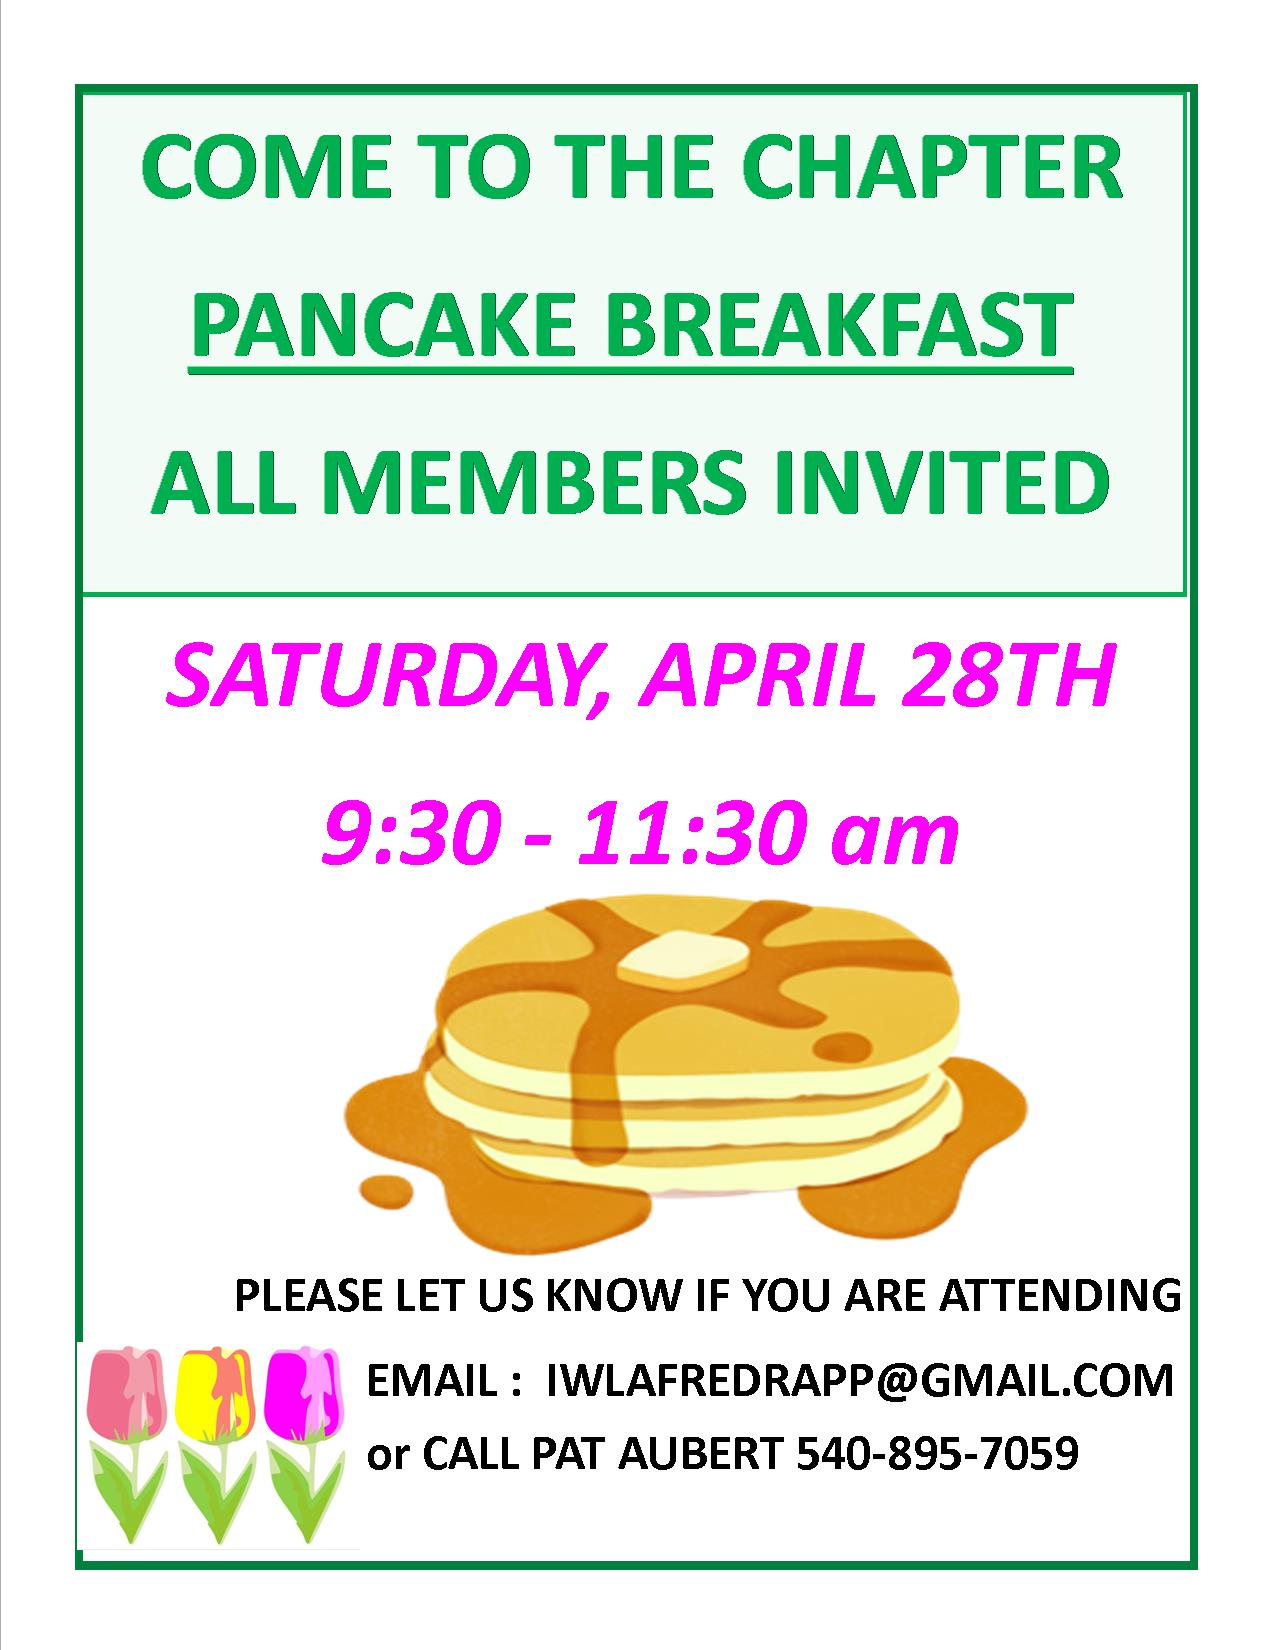 Poster for Member Pancake Breakfast